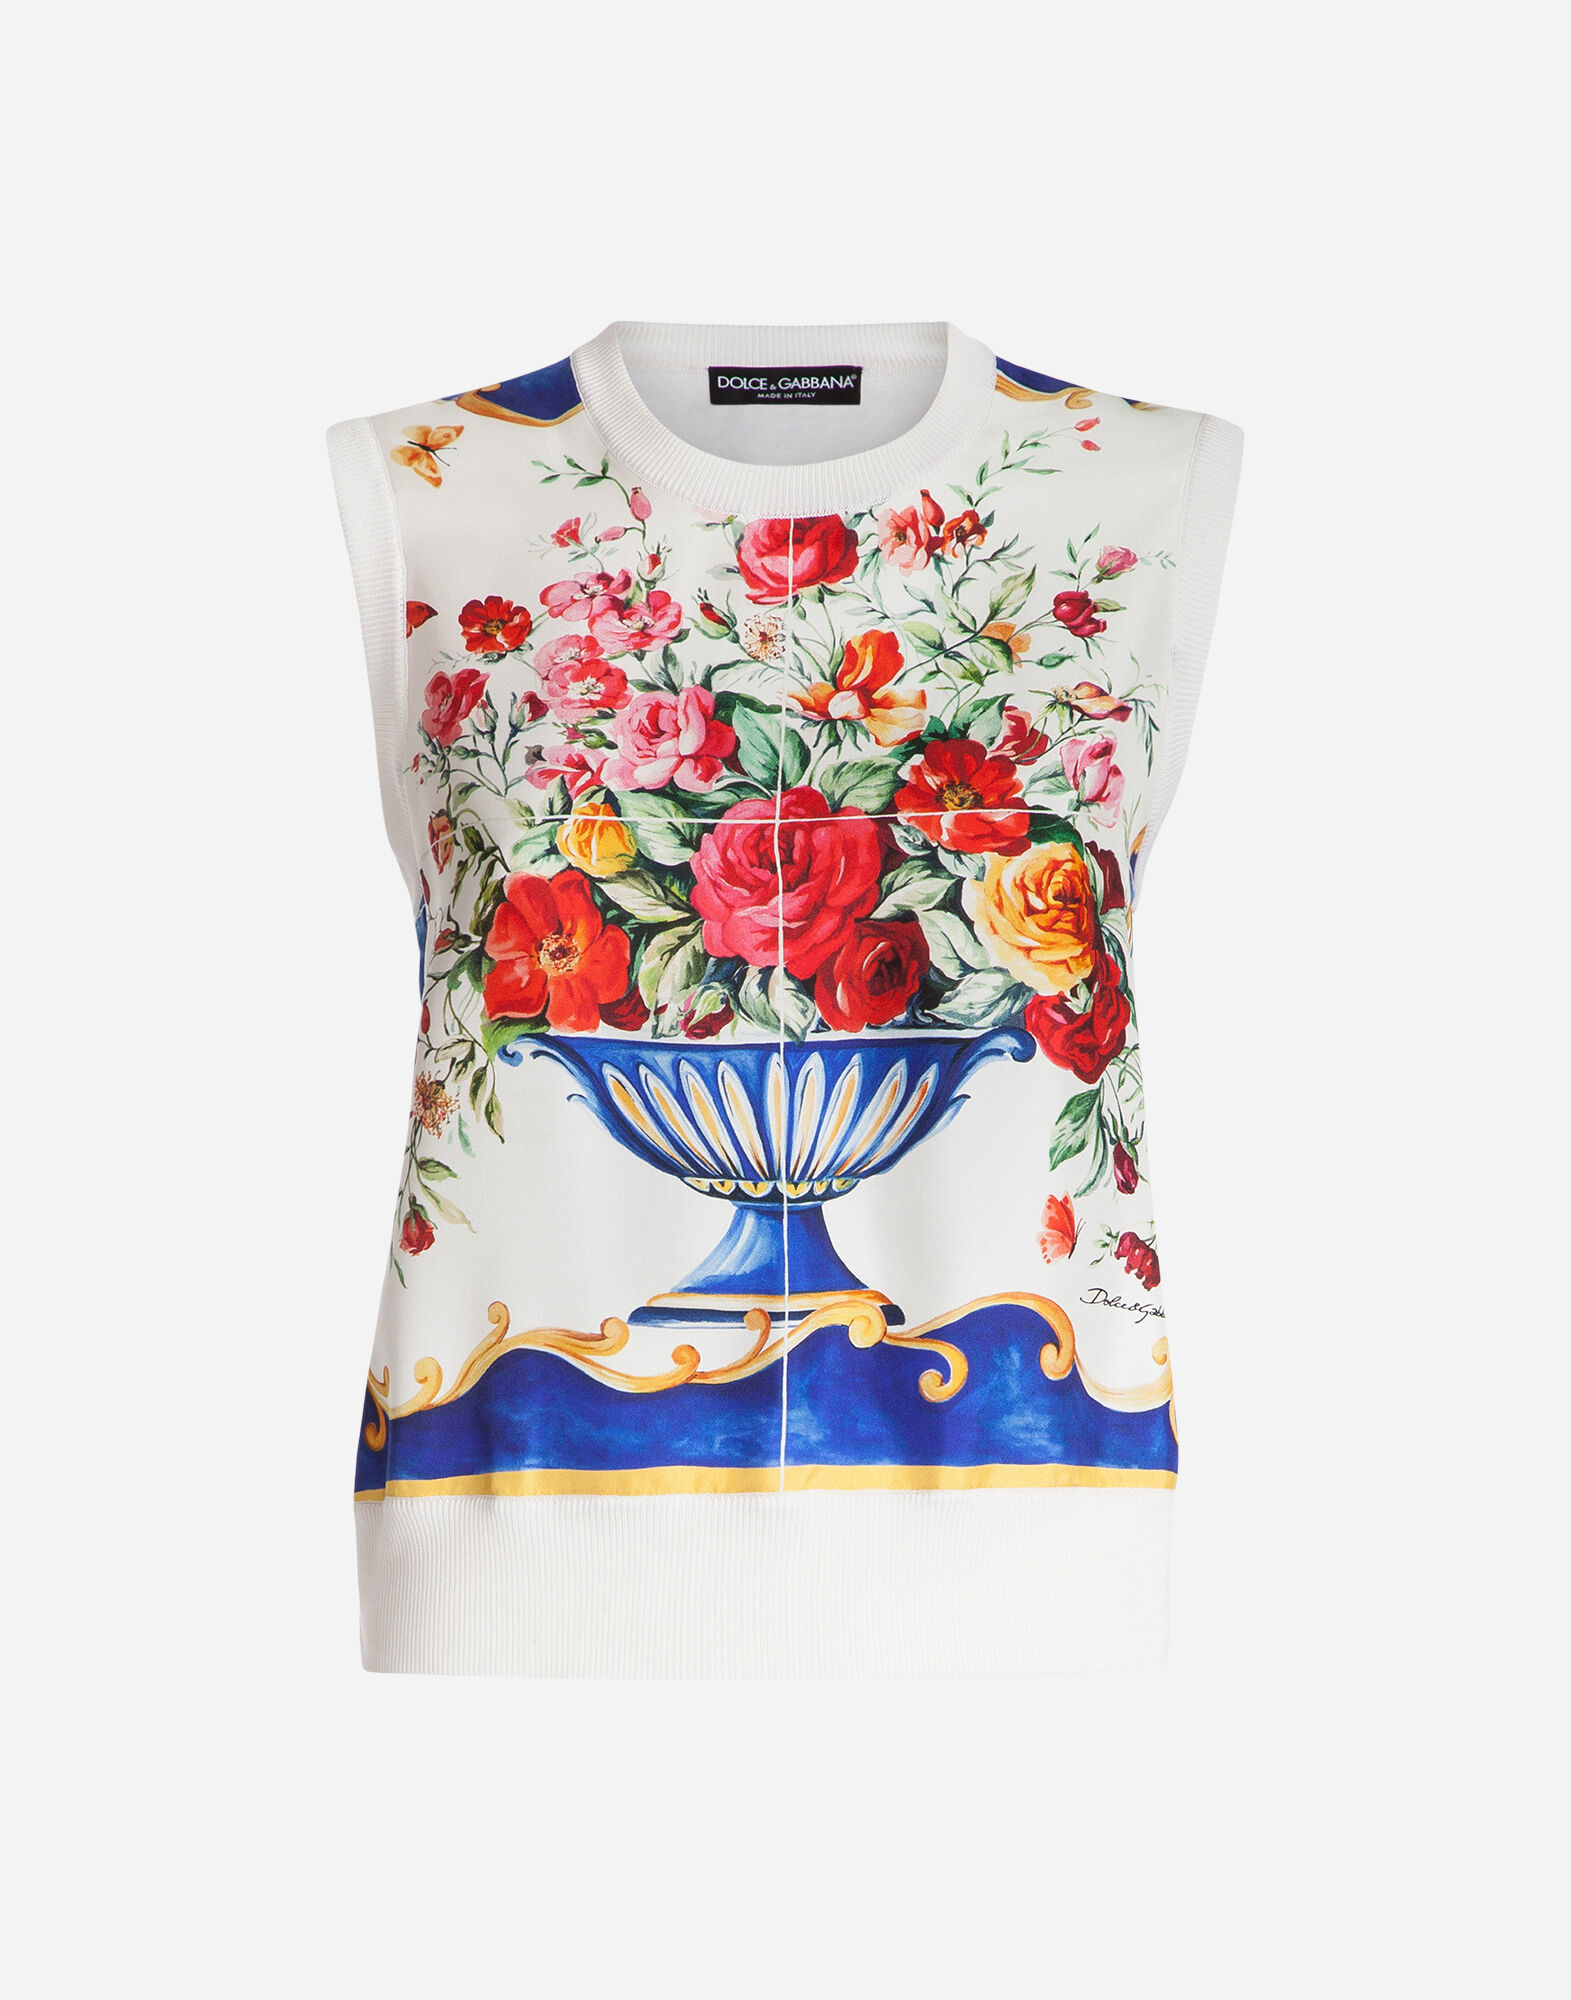 SLEEVELESS SWEATSHIRT WITH SILK FOULARD INSERT